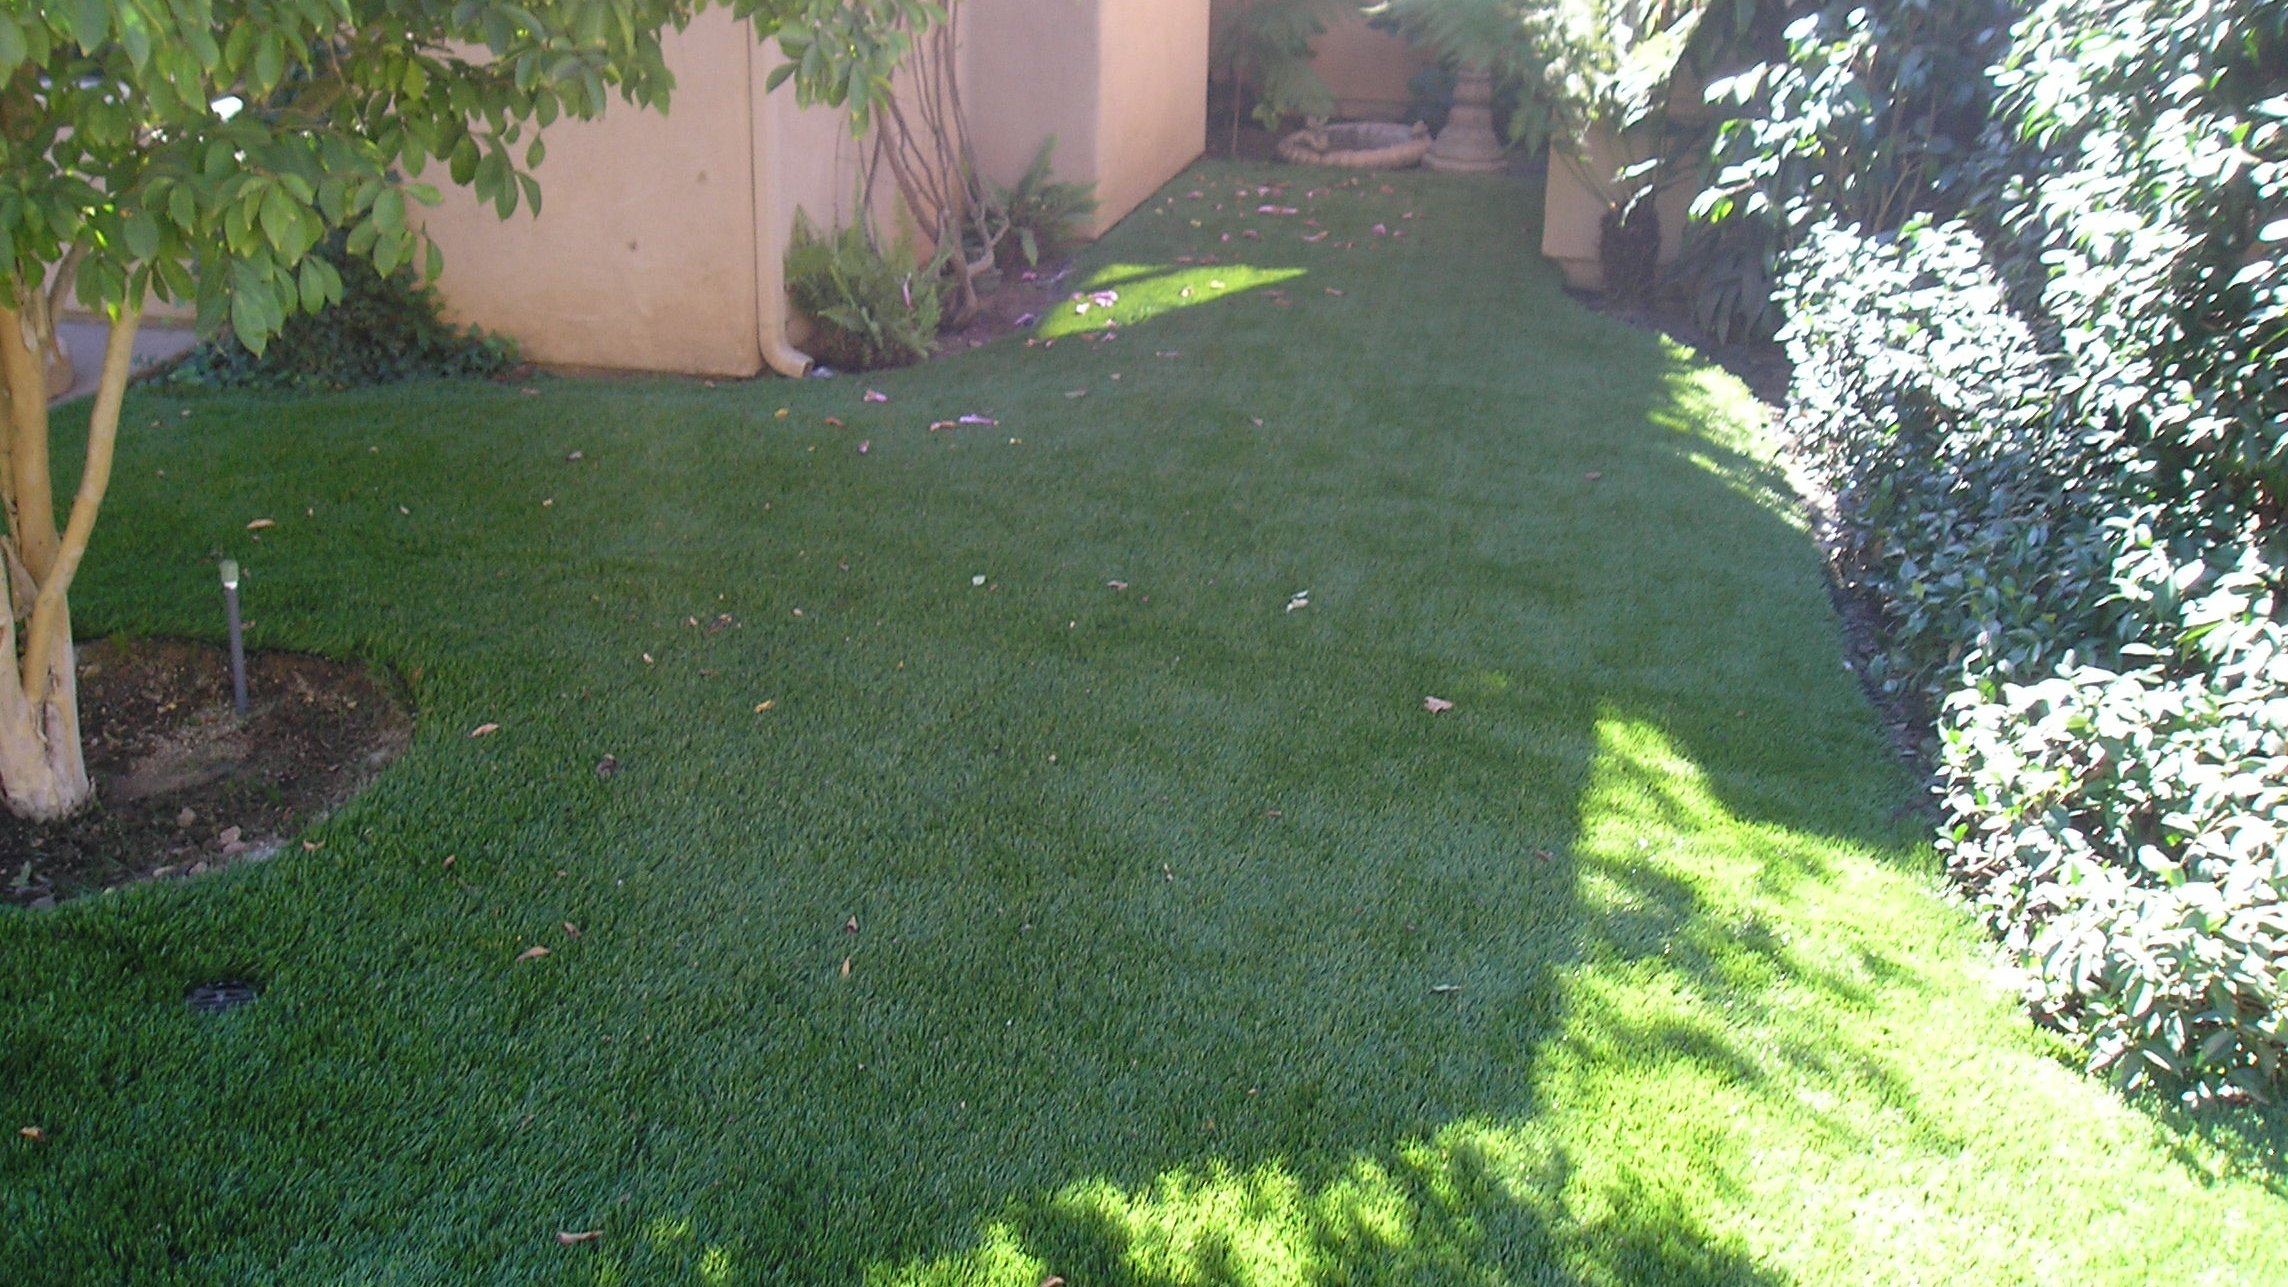 S Blade-90 real grass,most realistic artificial grass,realistic artificial grass,artificial lawn,synthetic lawn,fake lawn,turf lawn,fake grass lawn